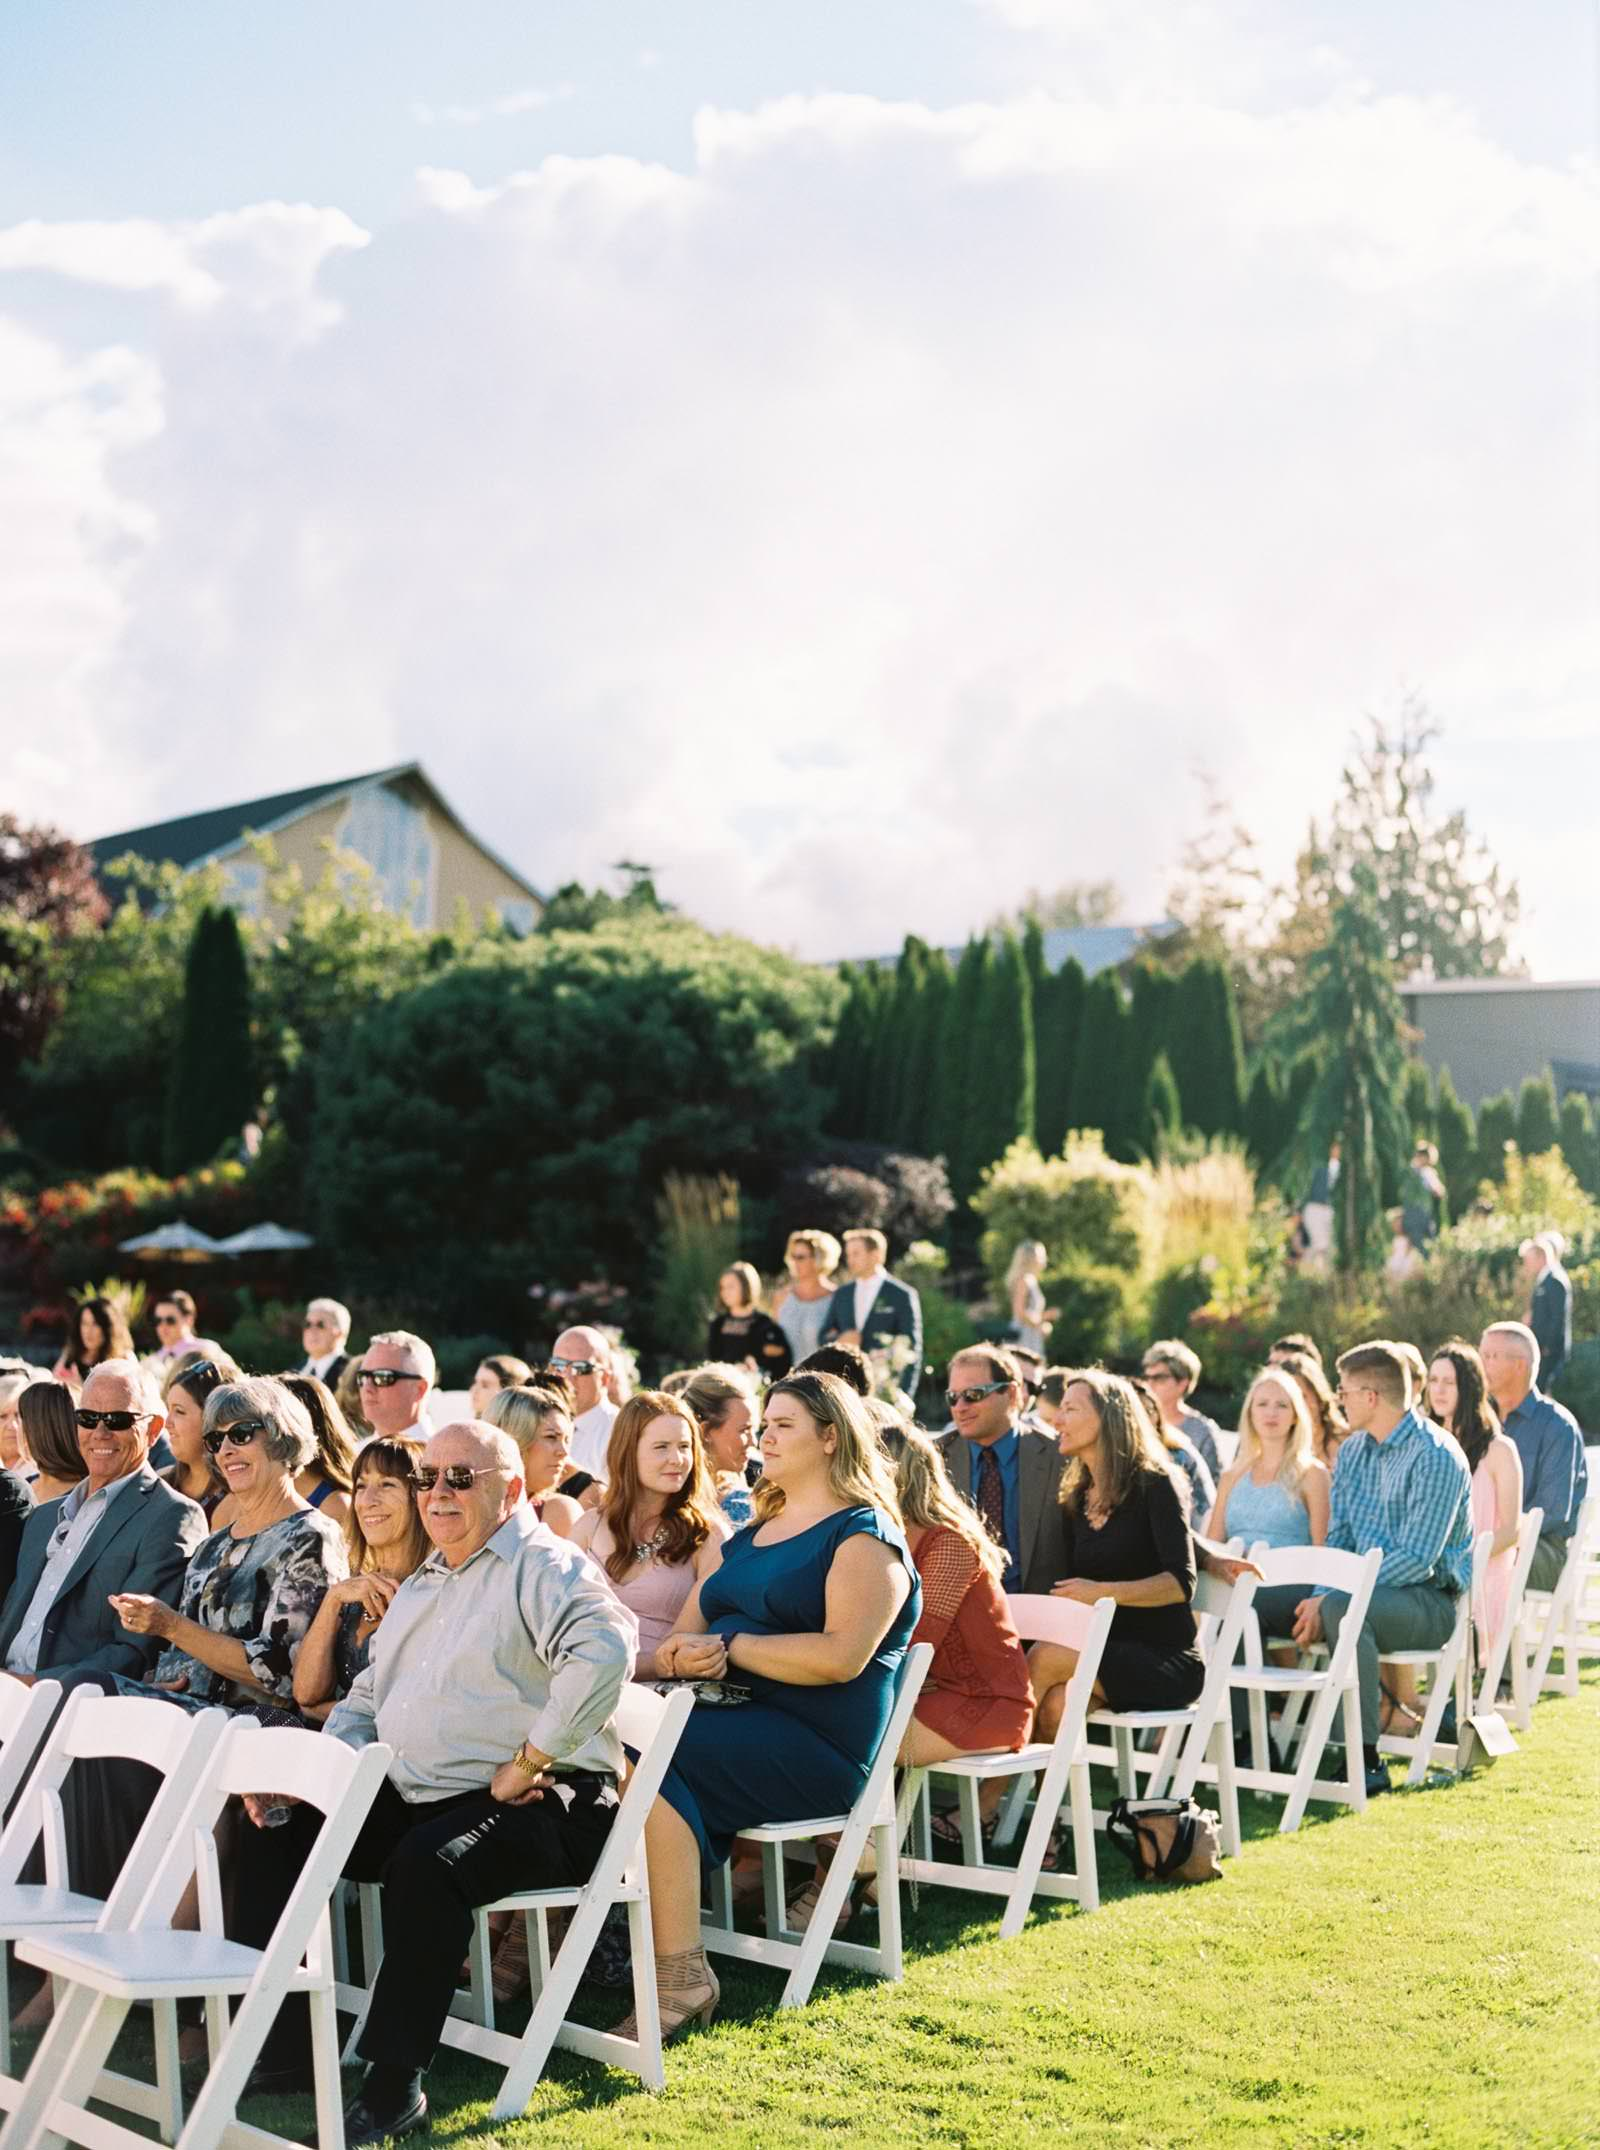 Summer Lord Hill Farms wedding ceremony photographed by Anna Peters